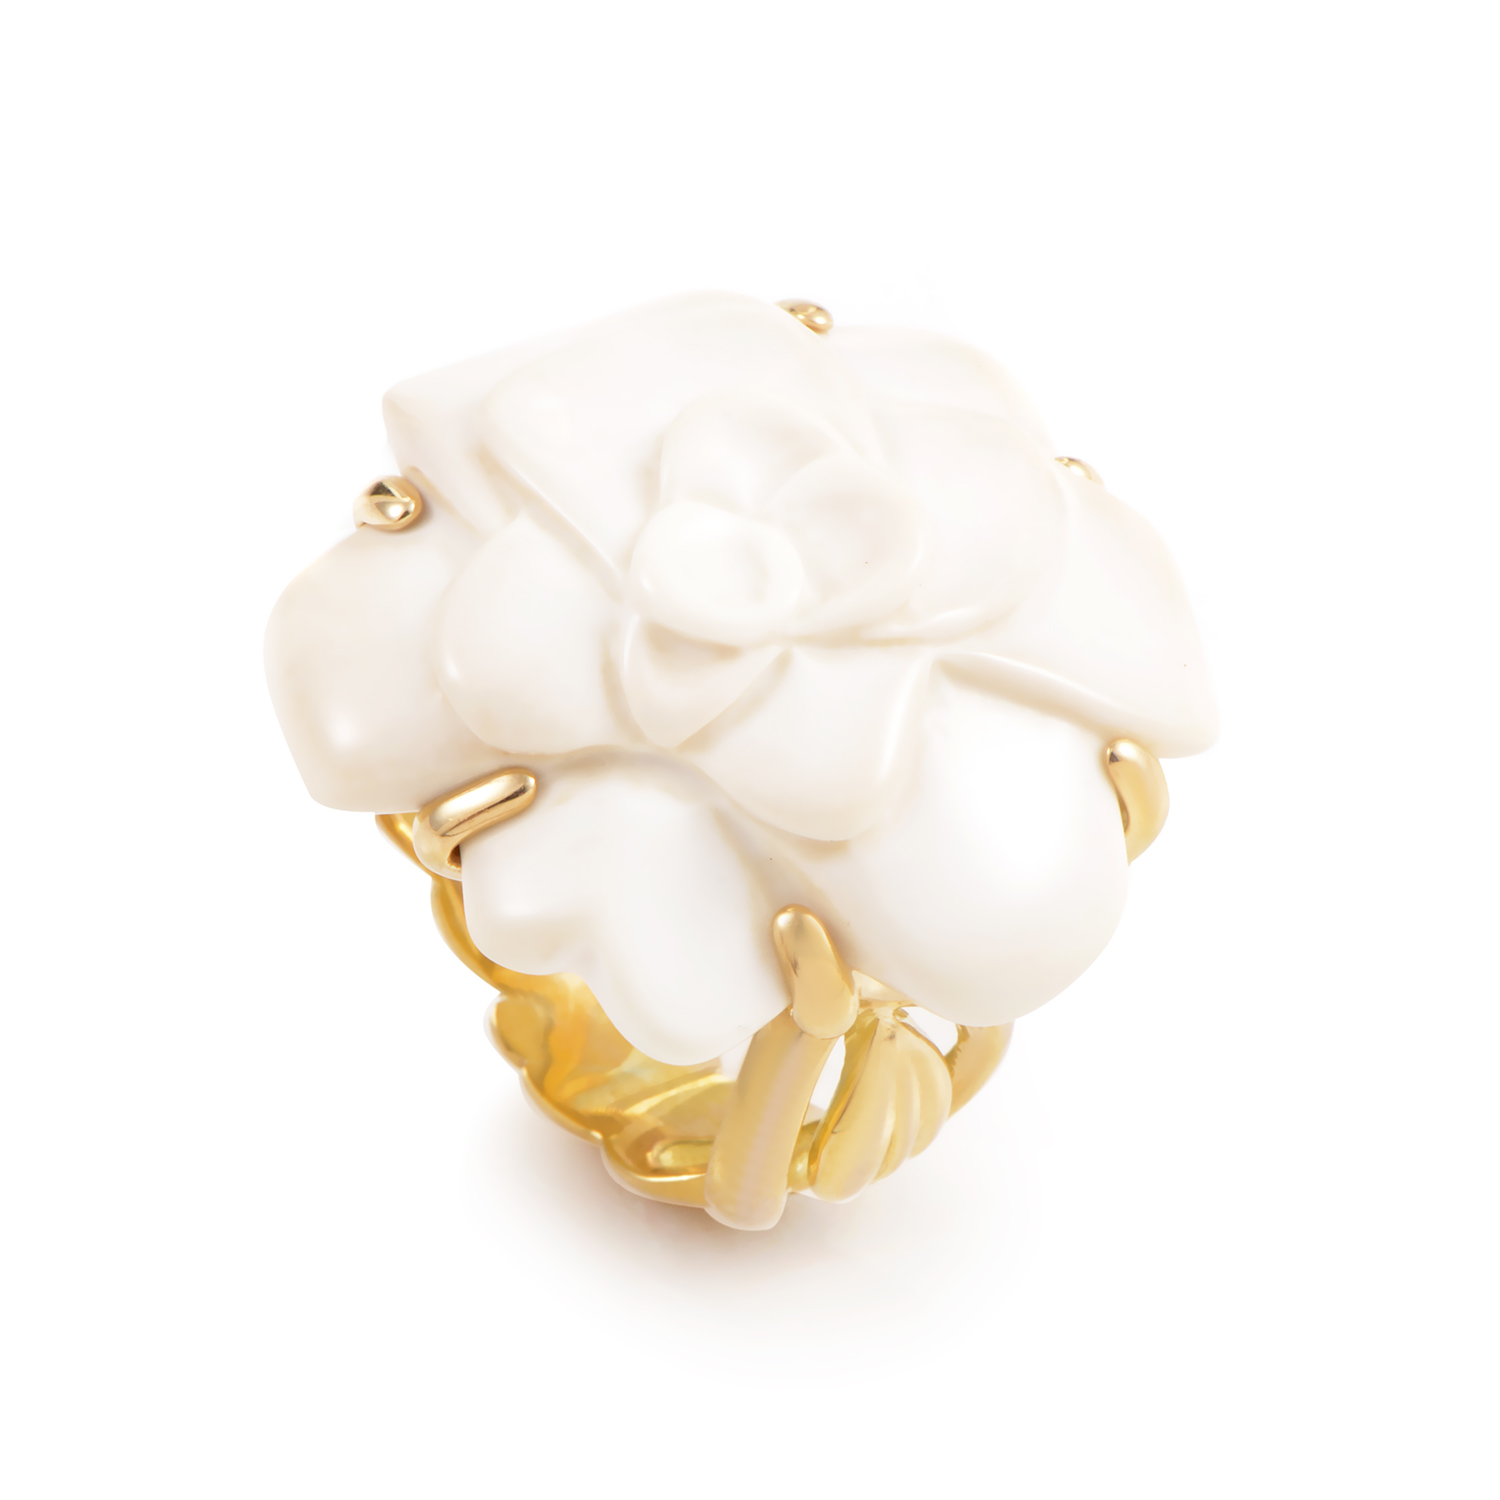 Chanel Camelia Women's Large 18K Yellow Gold White Agate Ring